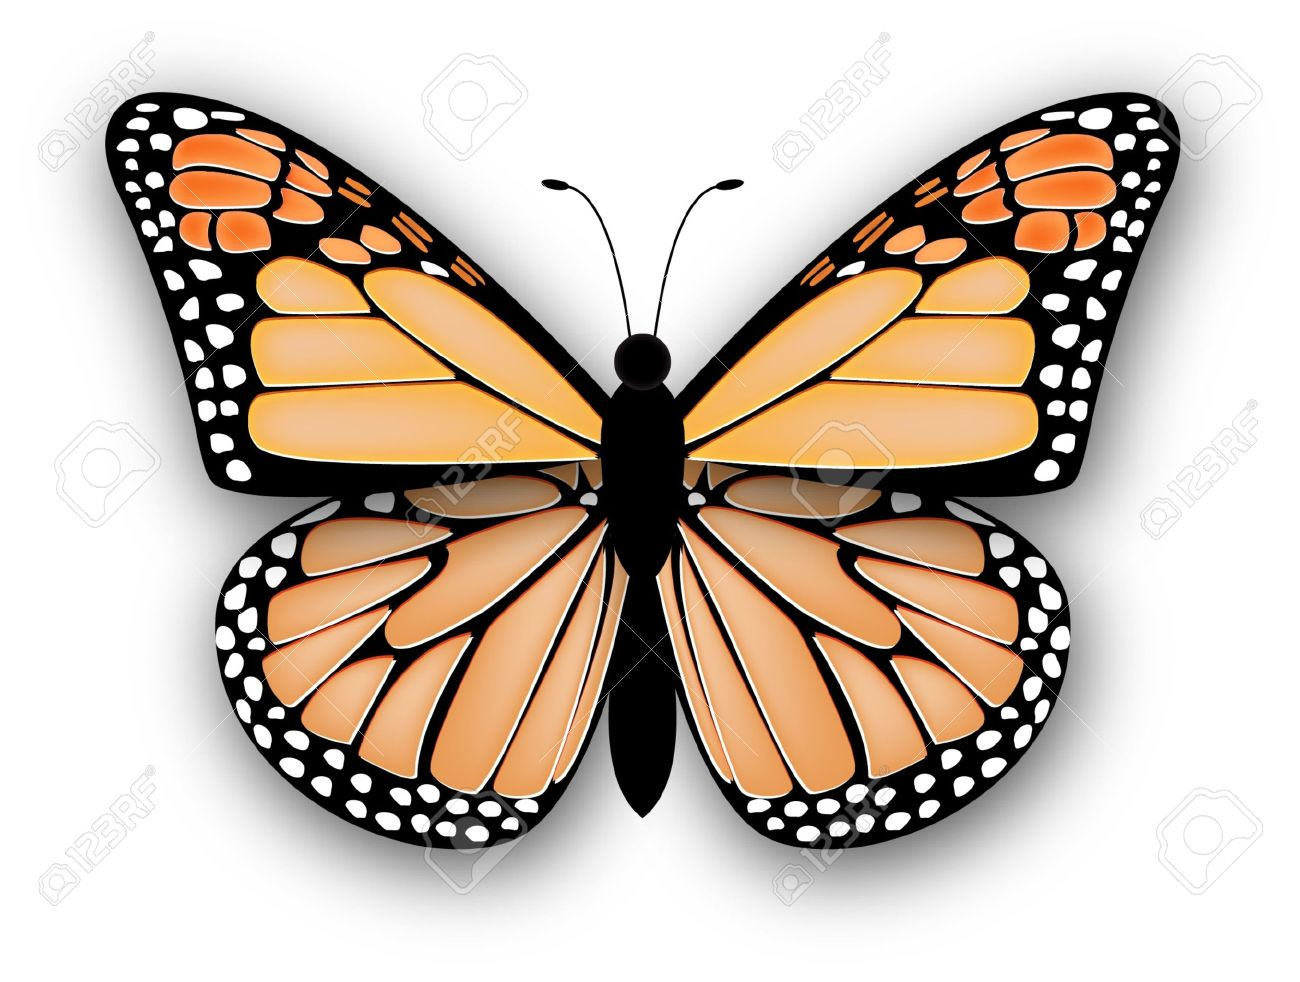 6 142 monarch butterfly stock vector illustration and royalty free rh 123rf com blue monarch butterfly clipart blue monarch butterfly clipart